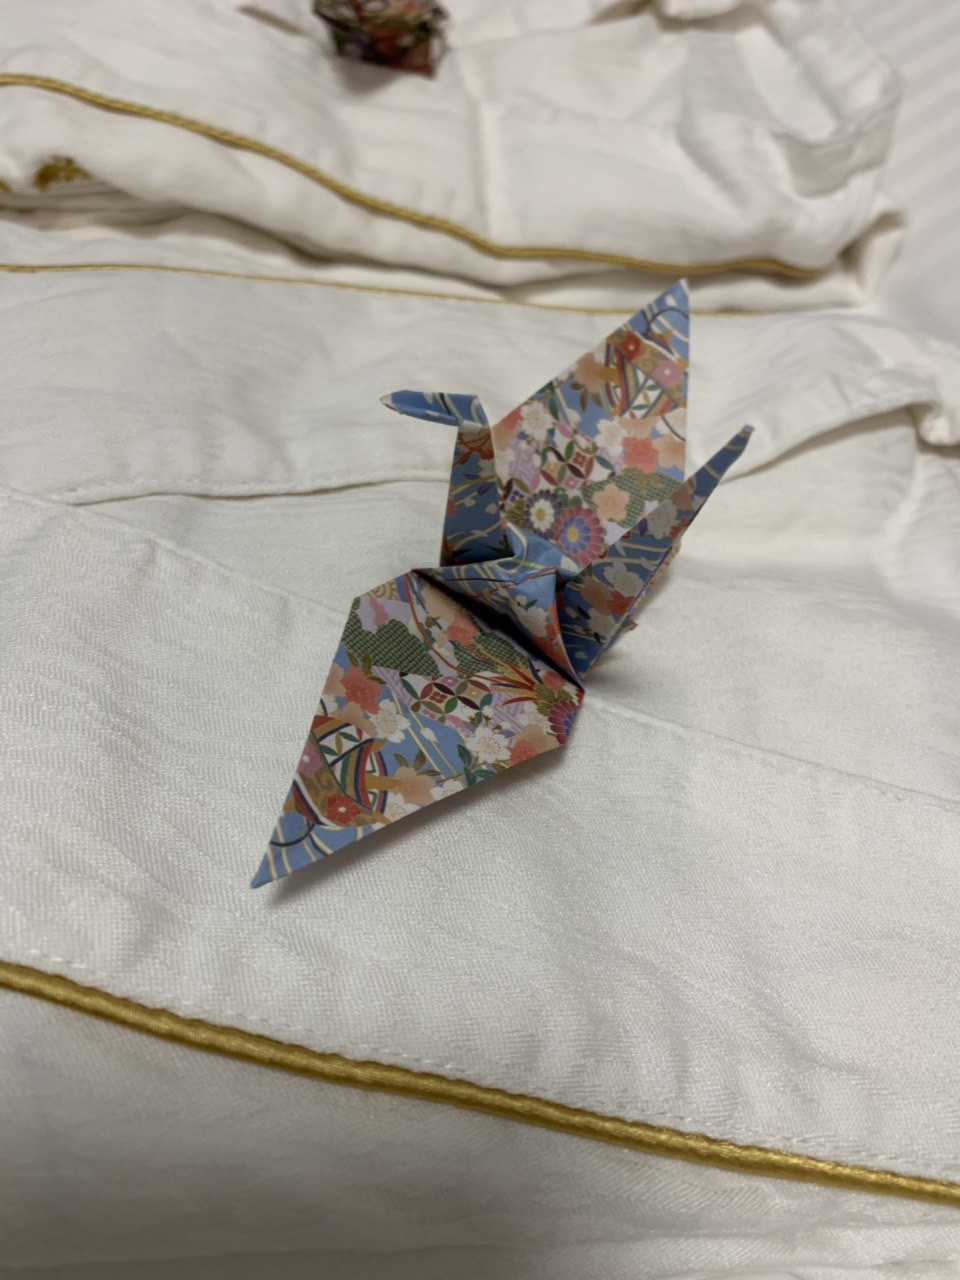 Crane origami on our kimono, a welcome gift from our hotel in Nagoya